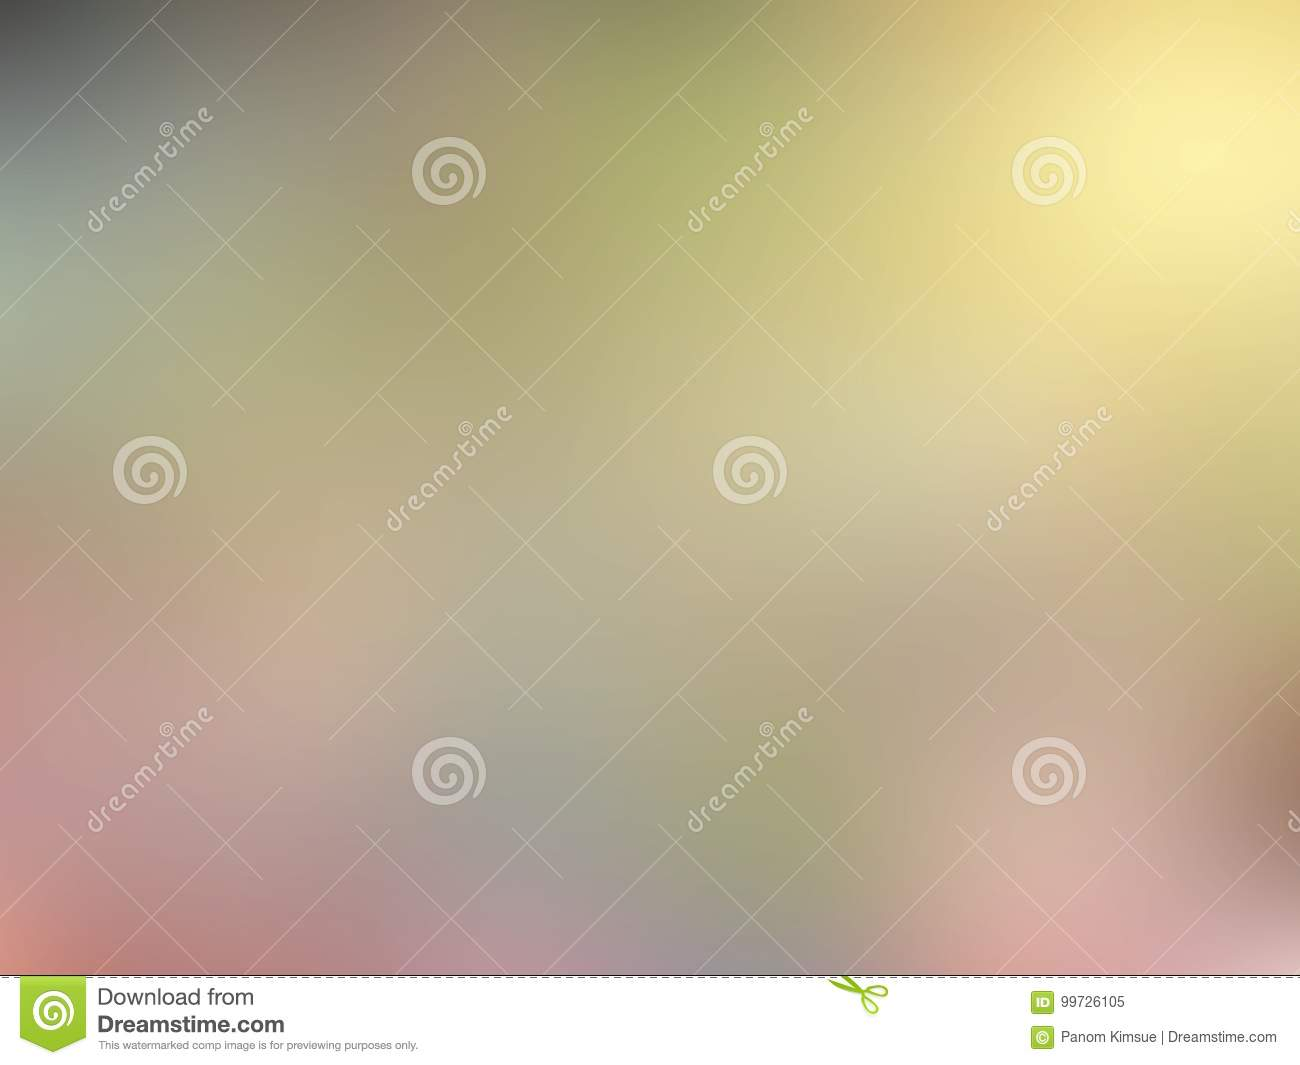 Abstract Blurred Brown Pink Green And Yellow Colored Background With